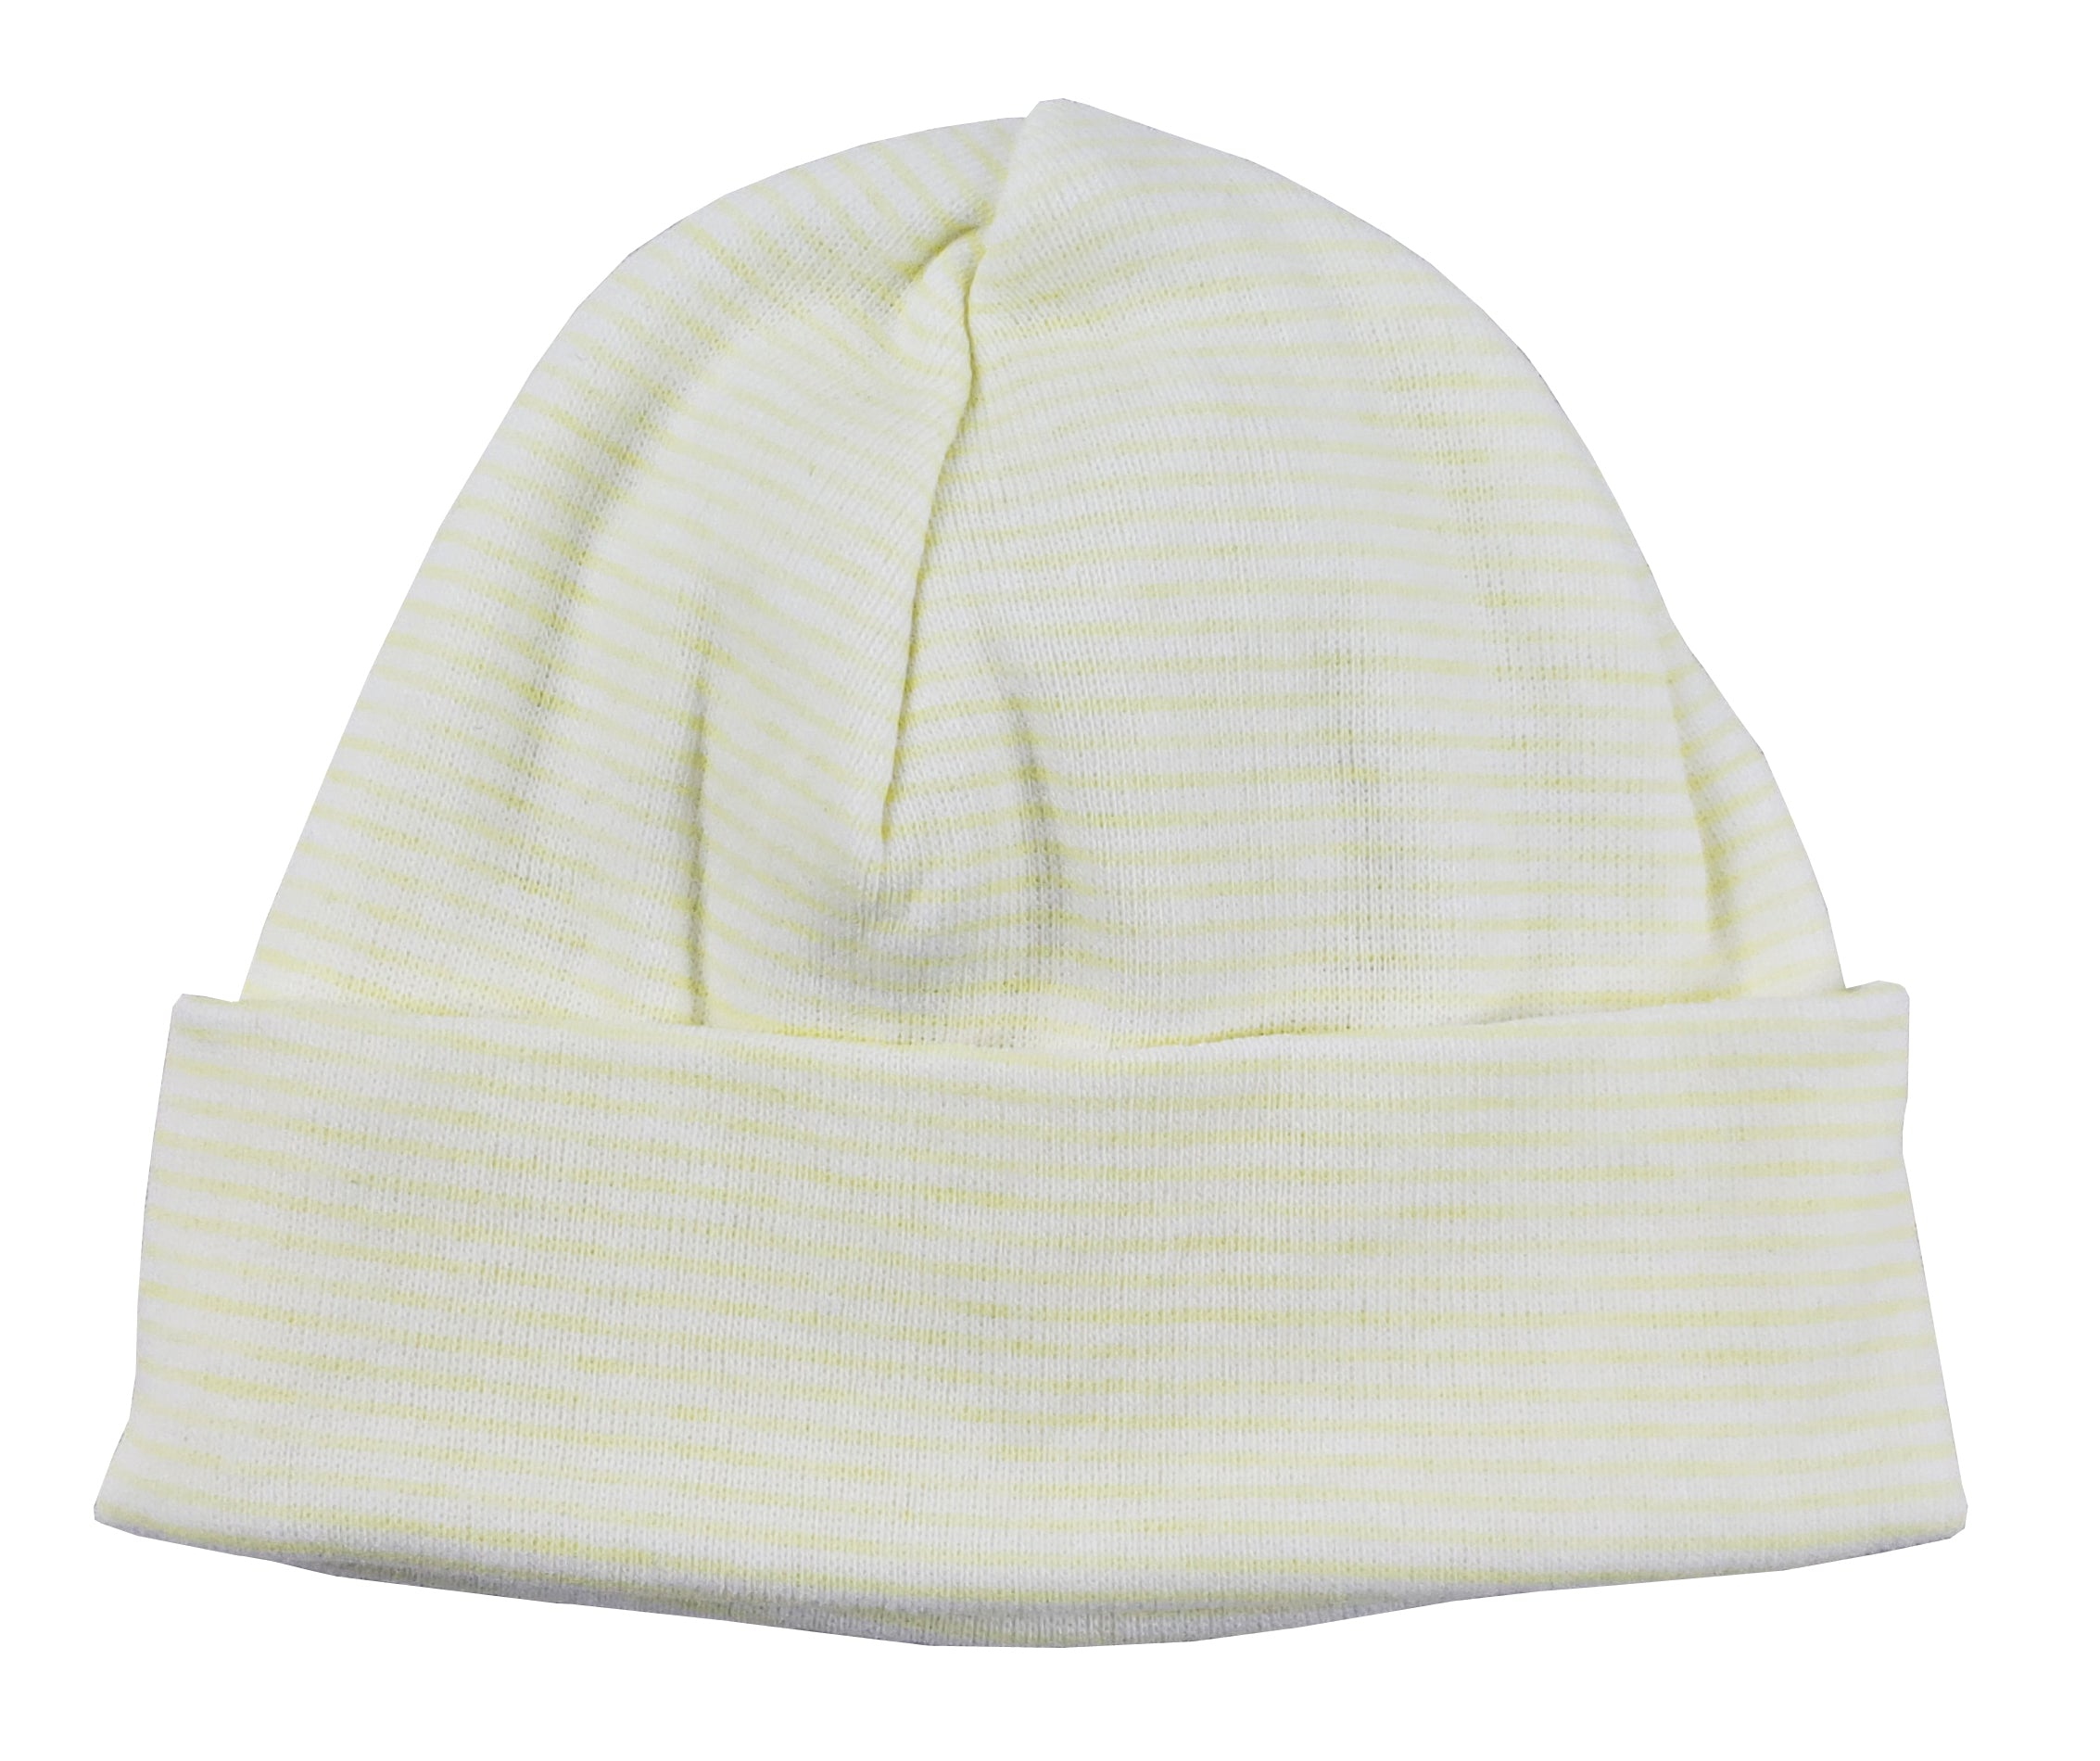 Stripped Baby Cap